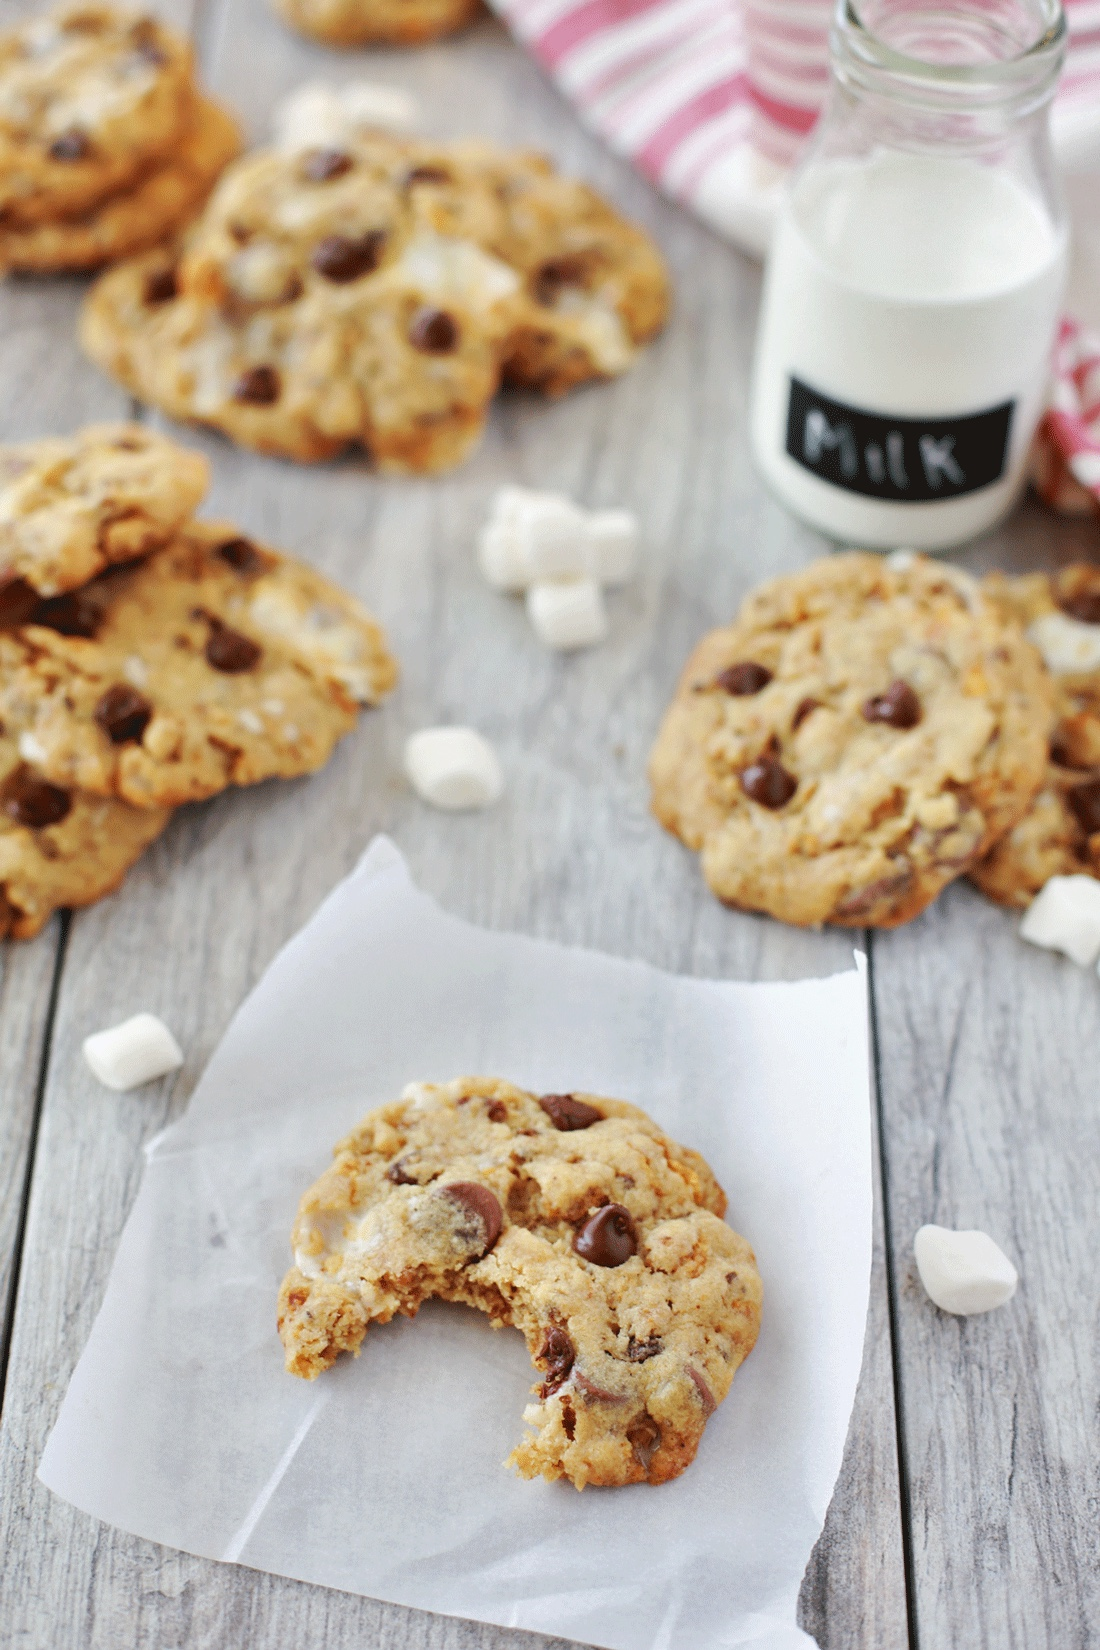 Marshmallow cookies recipe